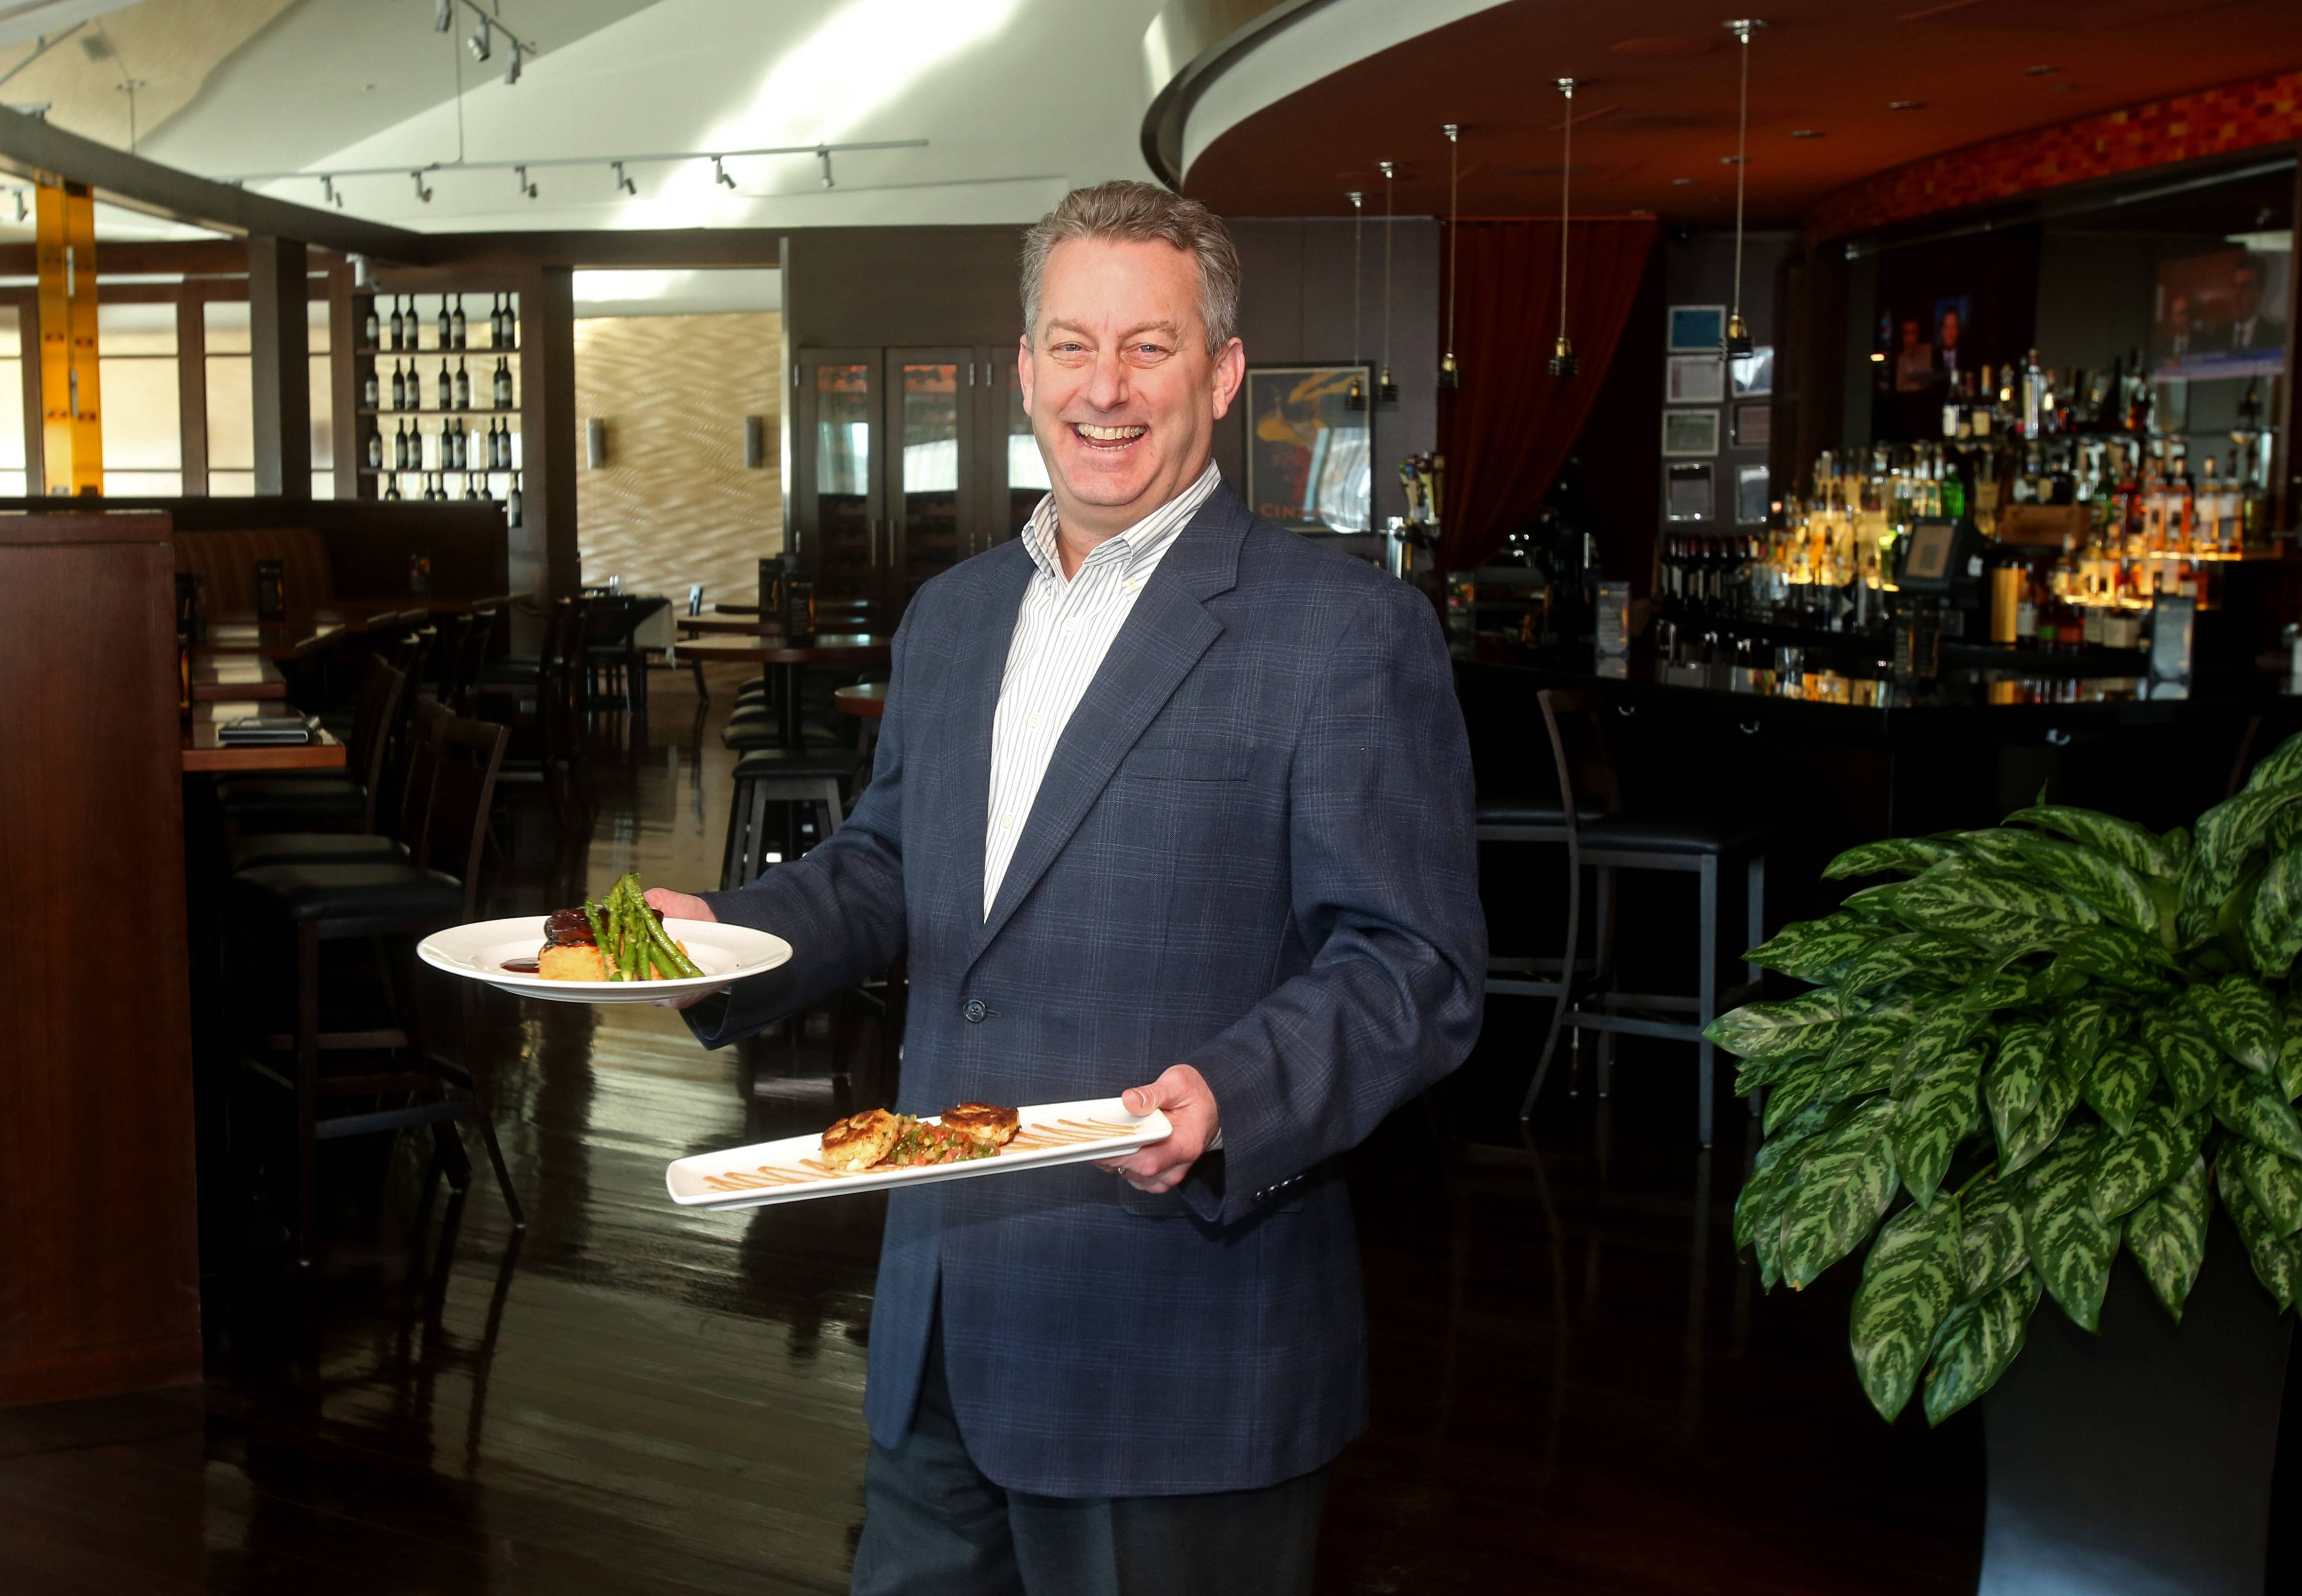 CityGate Grille, where Ray Kinney, chairman of the Dine Naperville committee, is seen about to enjoy a meal, is one of 34 restaurants participating in the first Naperville Restaurant Week from Feb. 16 to March 3.